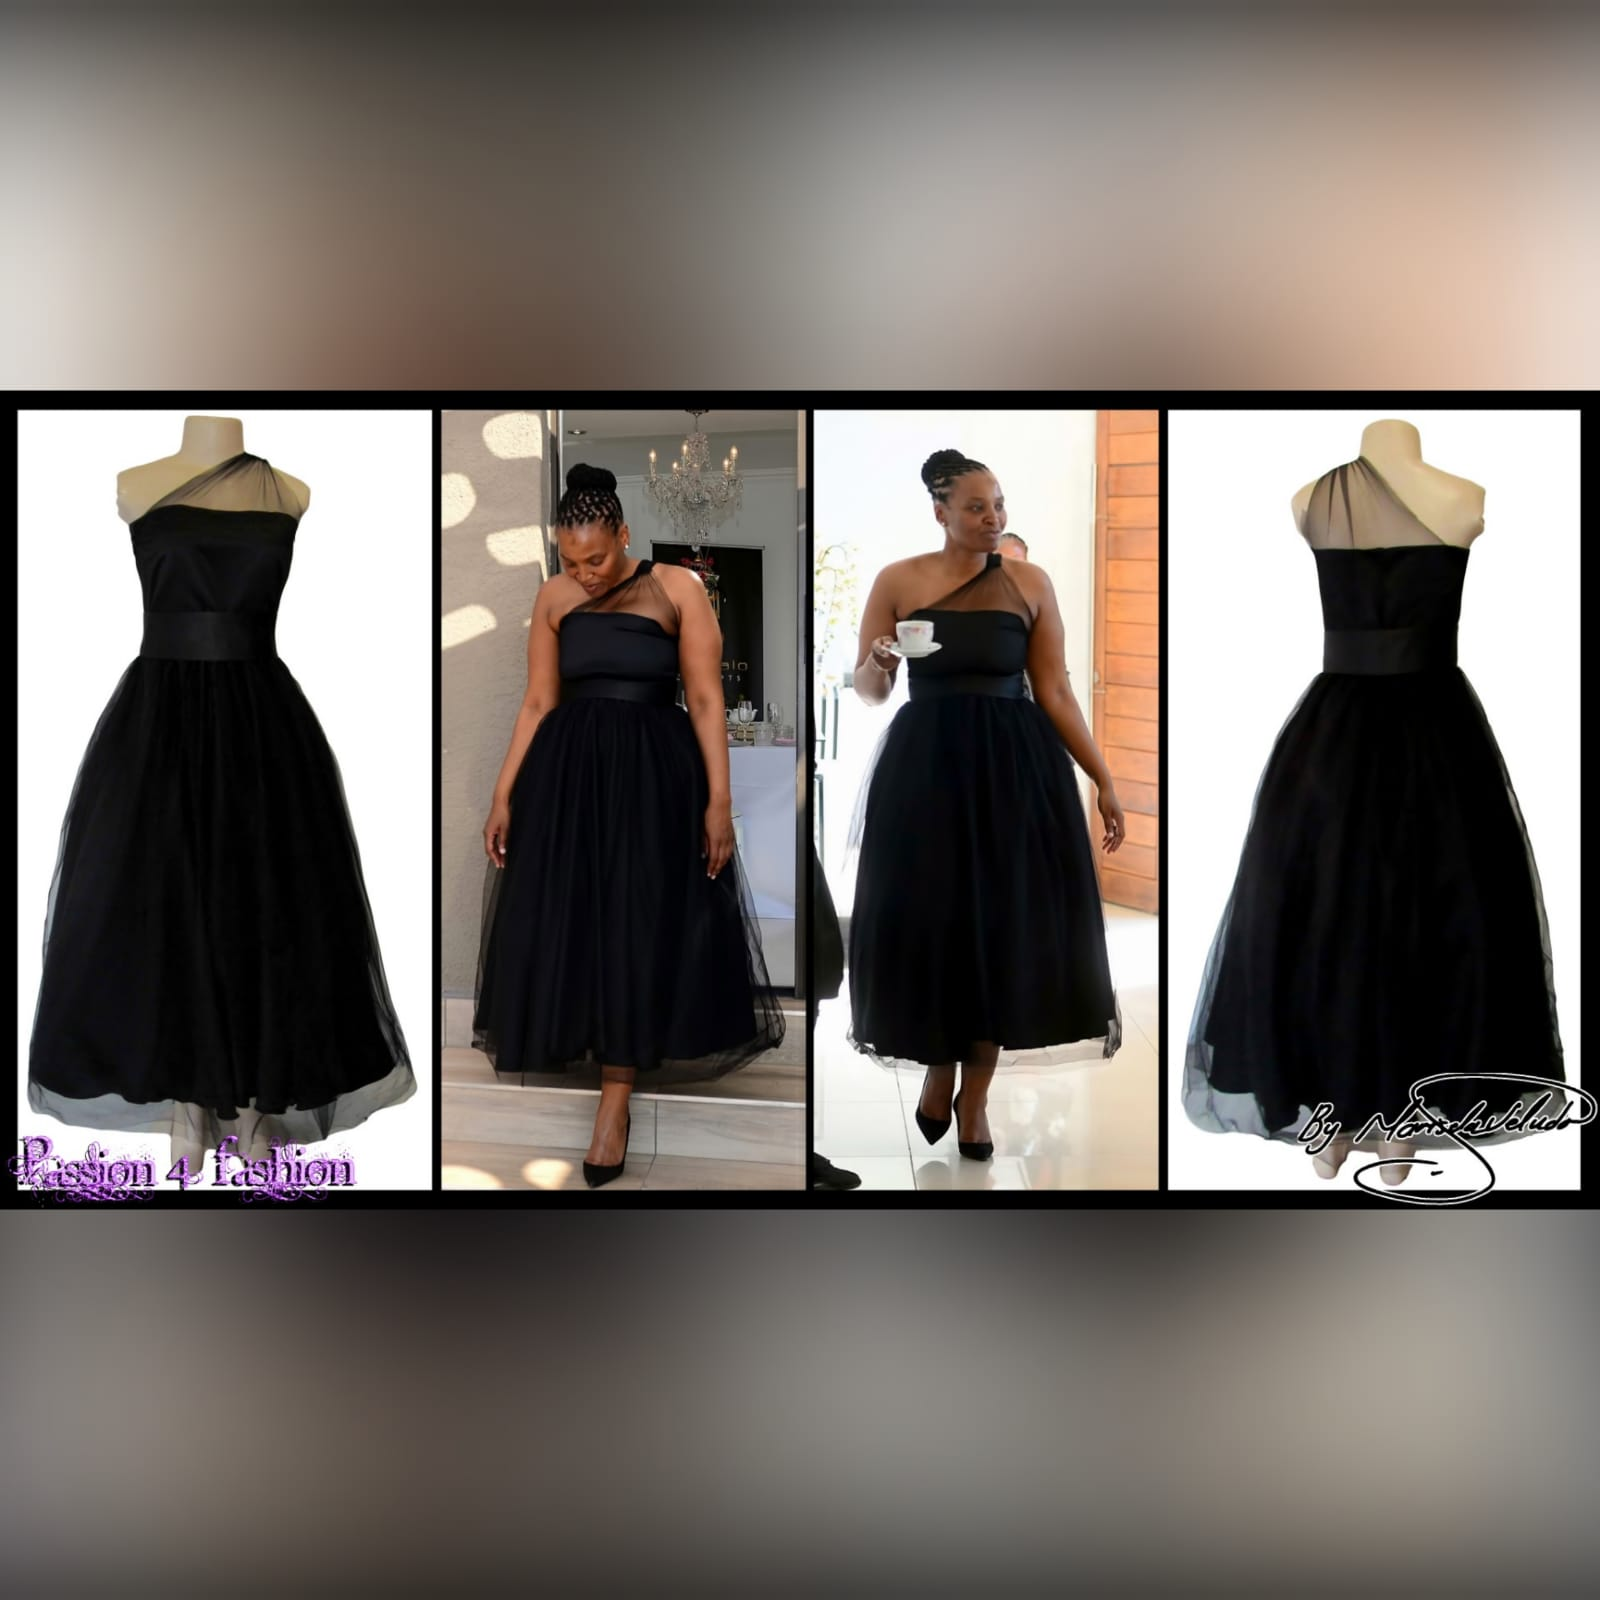 Back ankle length evening party dress 5 back ankle-length evening party dress, overlay with tulle, with a high waisted satin belt. Bodice with tulle creating a one-shoulder design